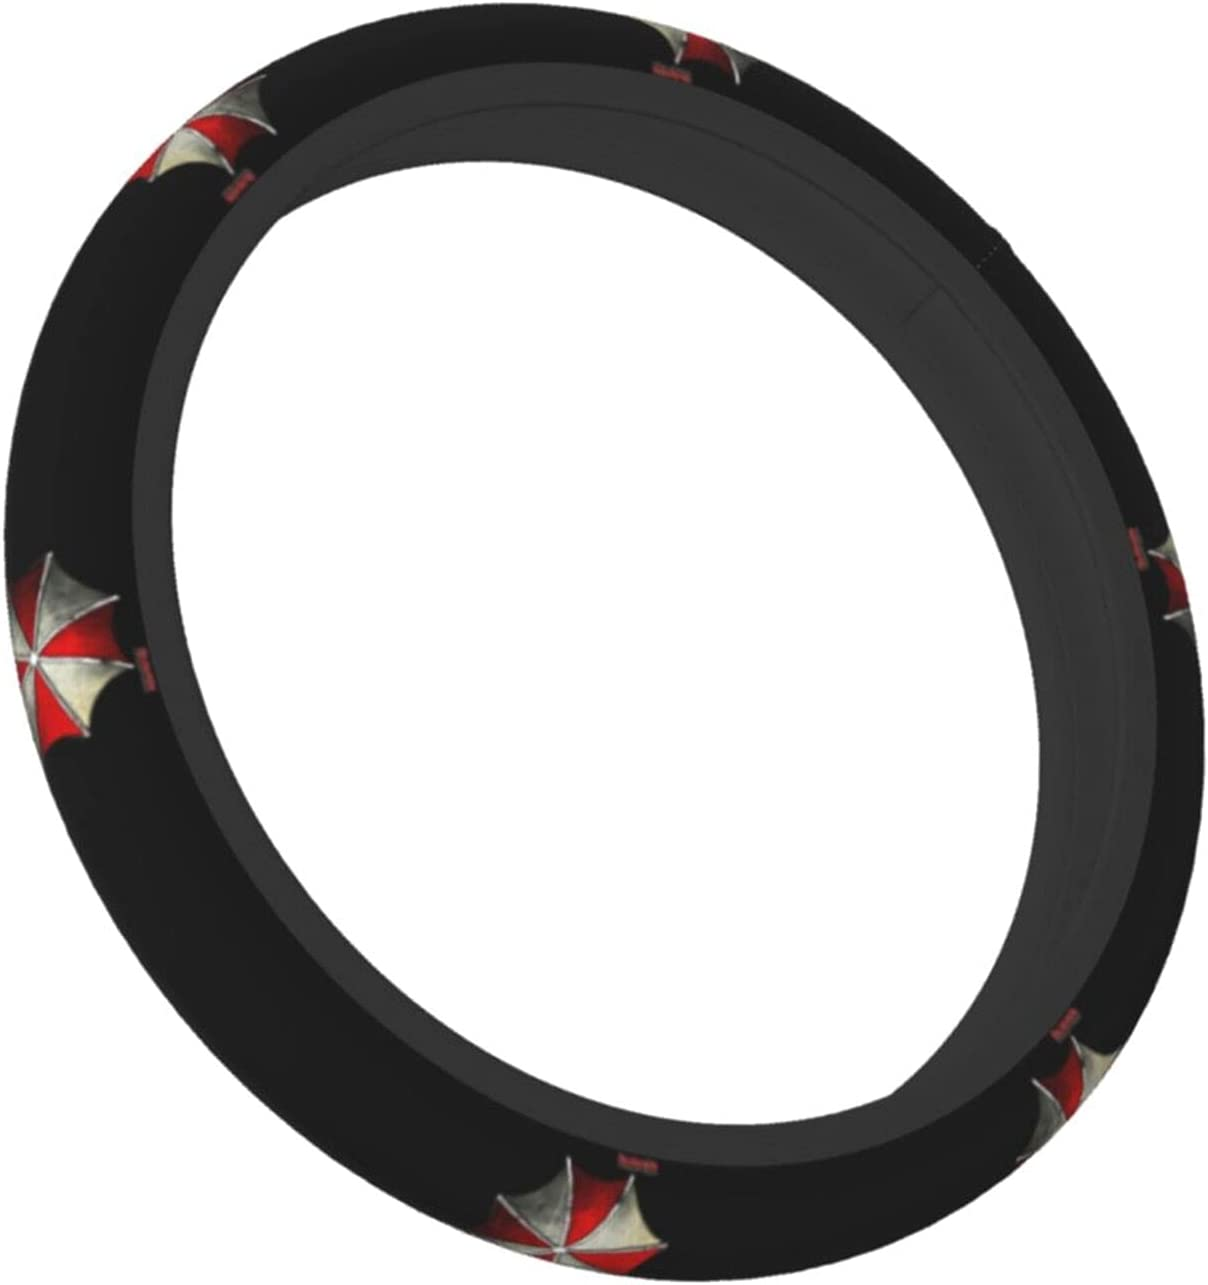 yunsu Res-ident E-vil Steering Complete Free Fashionable Shipping Wheel Cover Durable Anti-Slip Ela